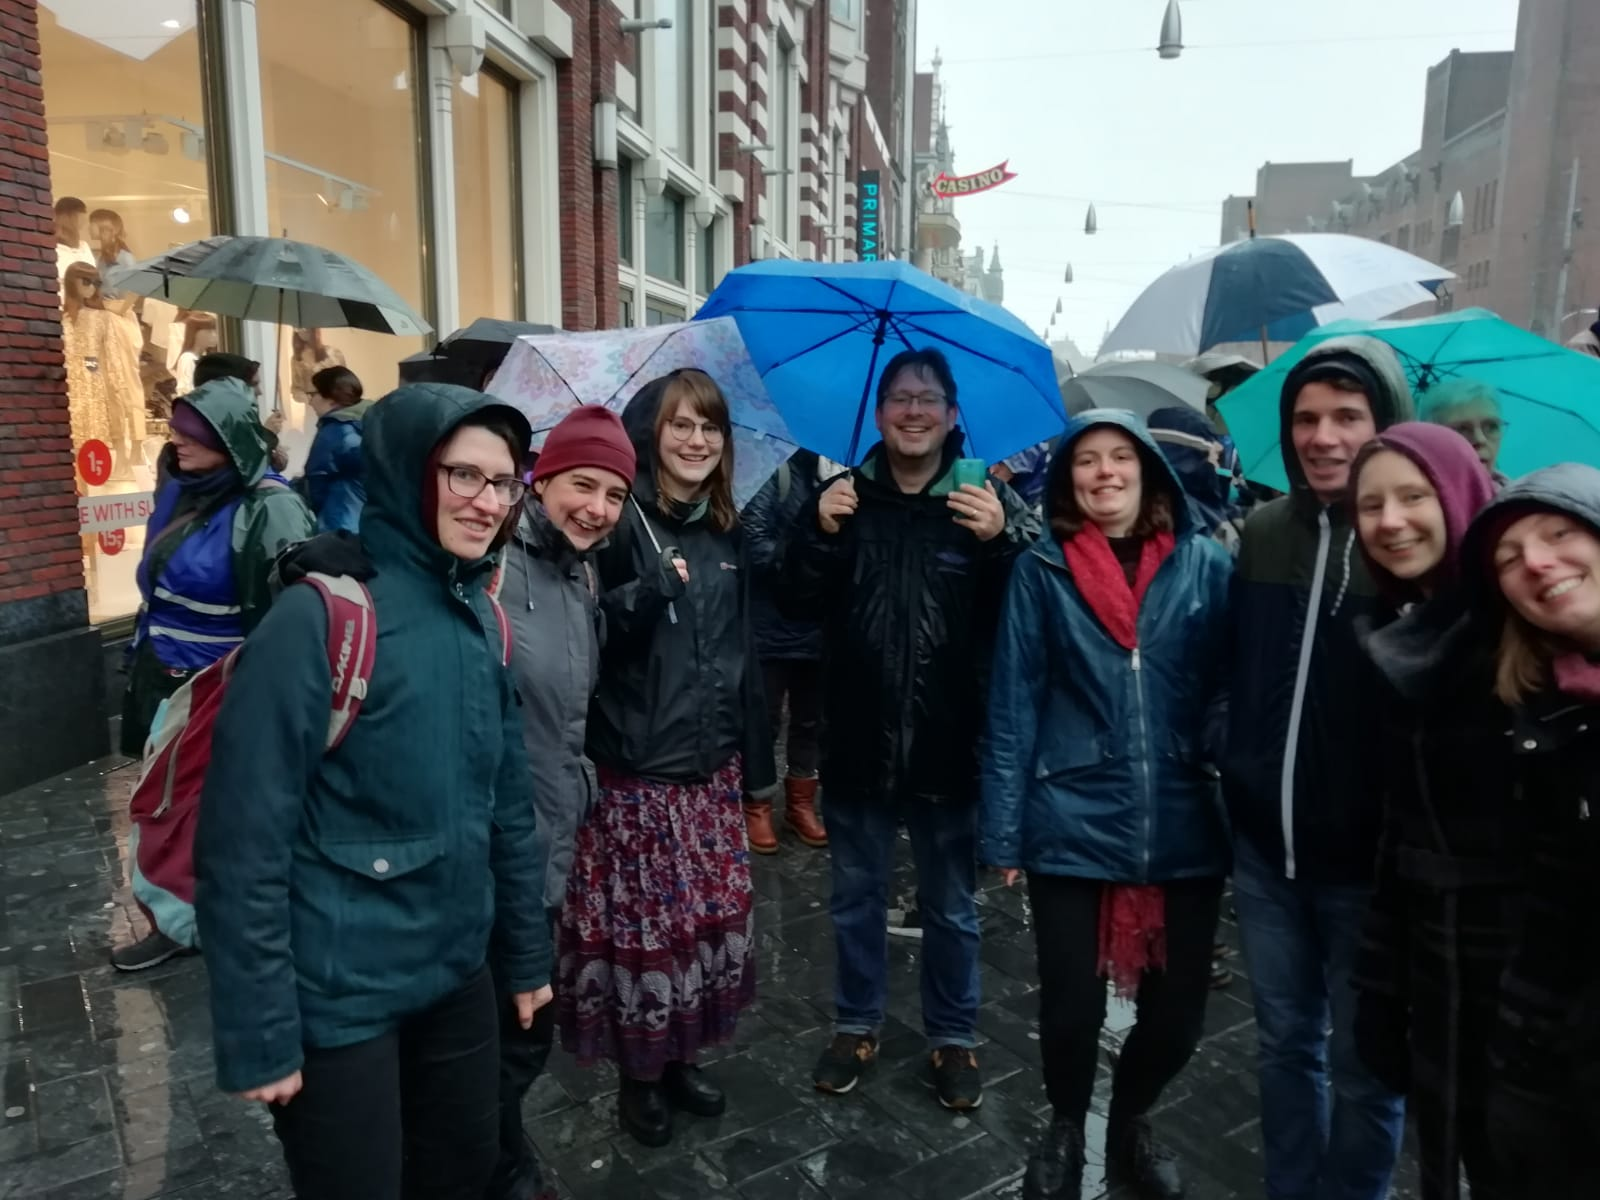 EMEYF at Amsterdam climate march